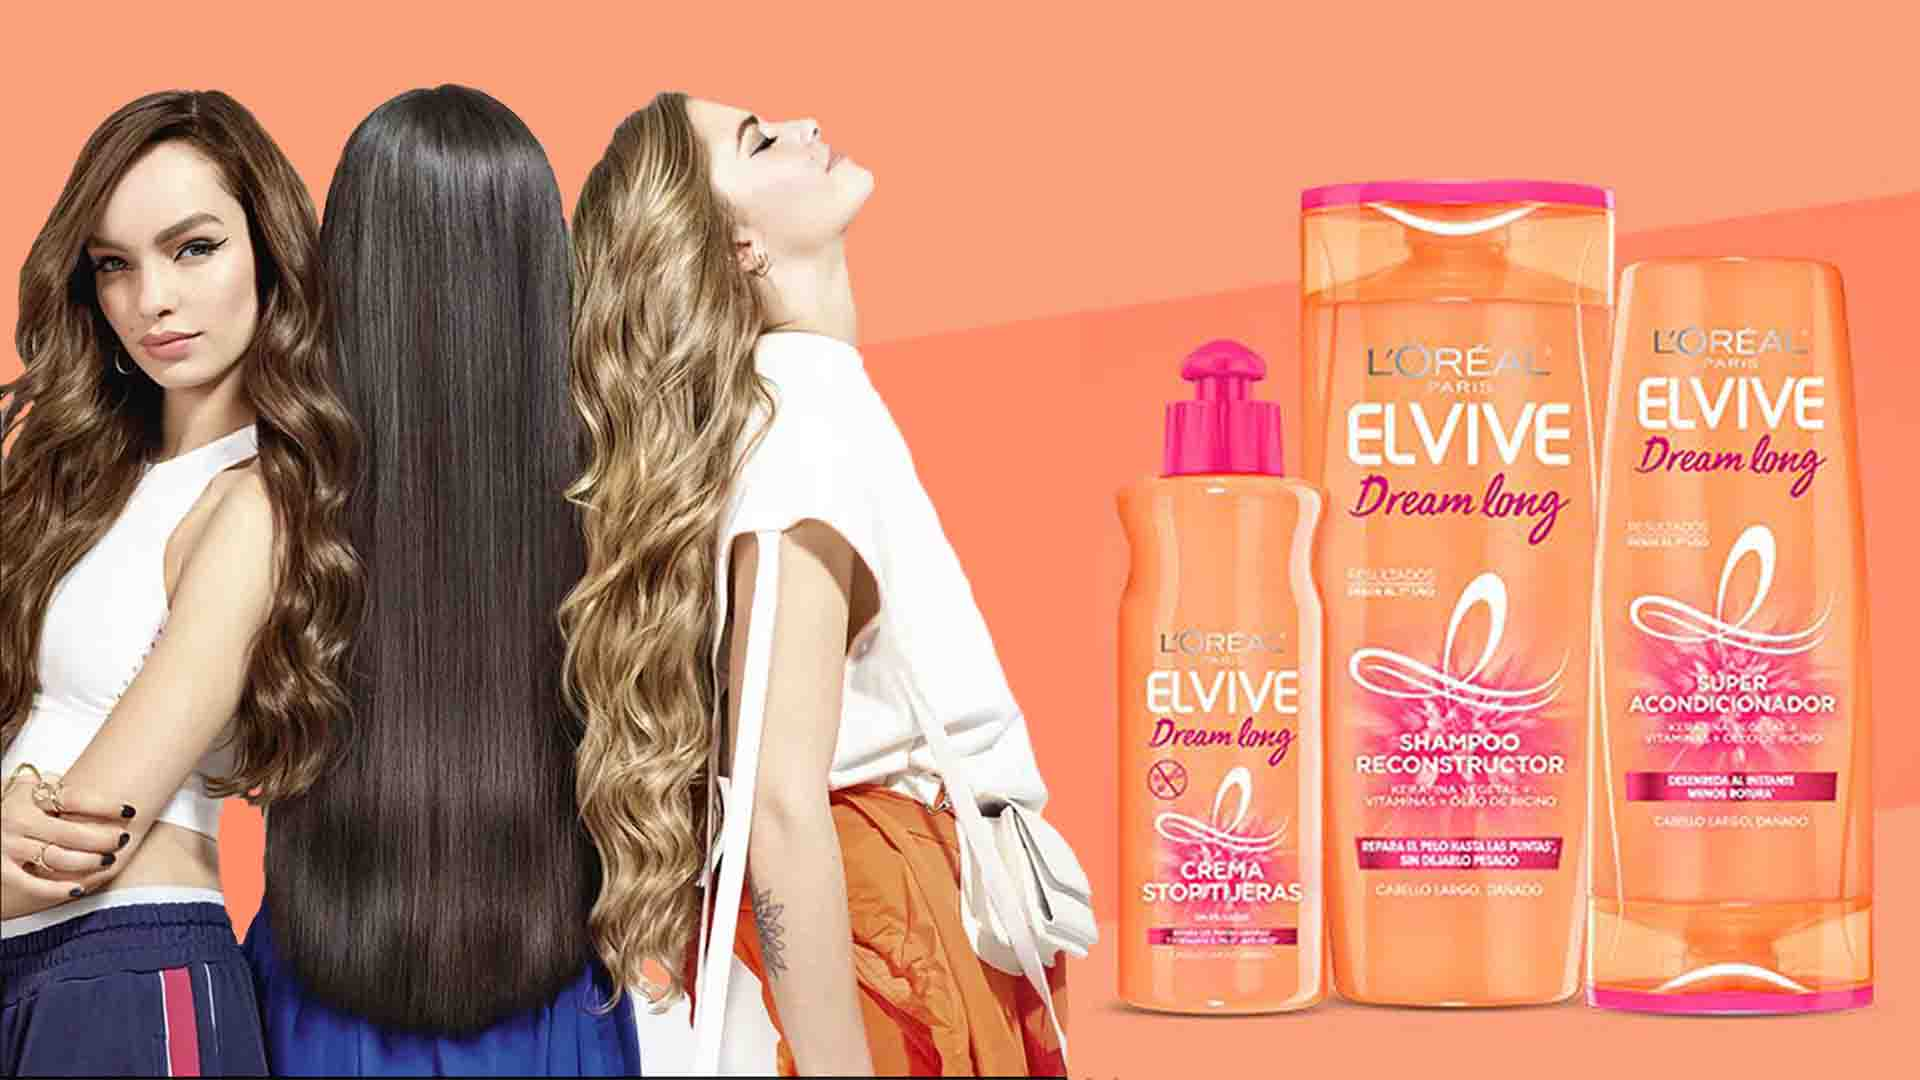 elvive dream long loreal